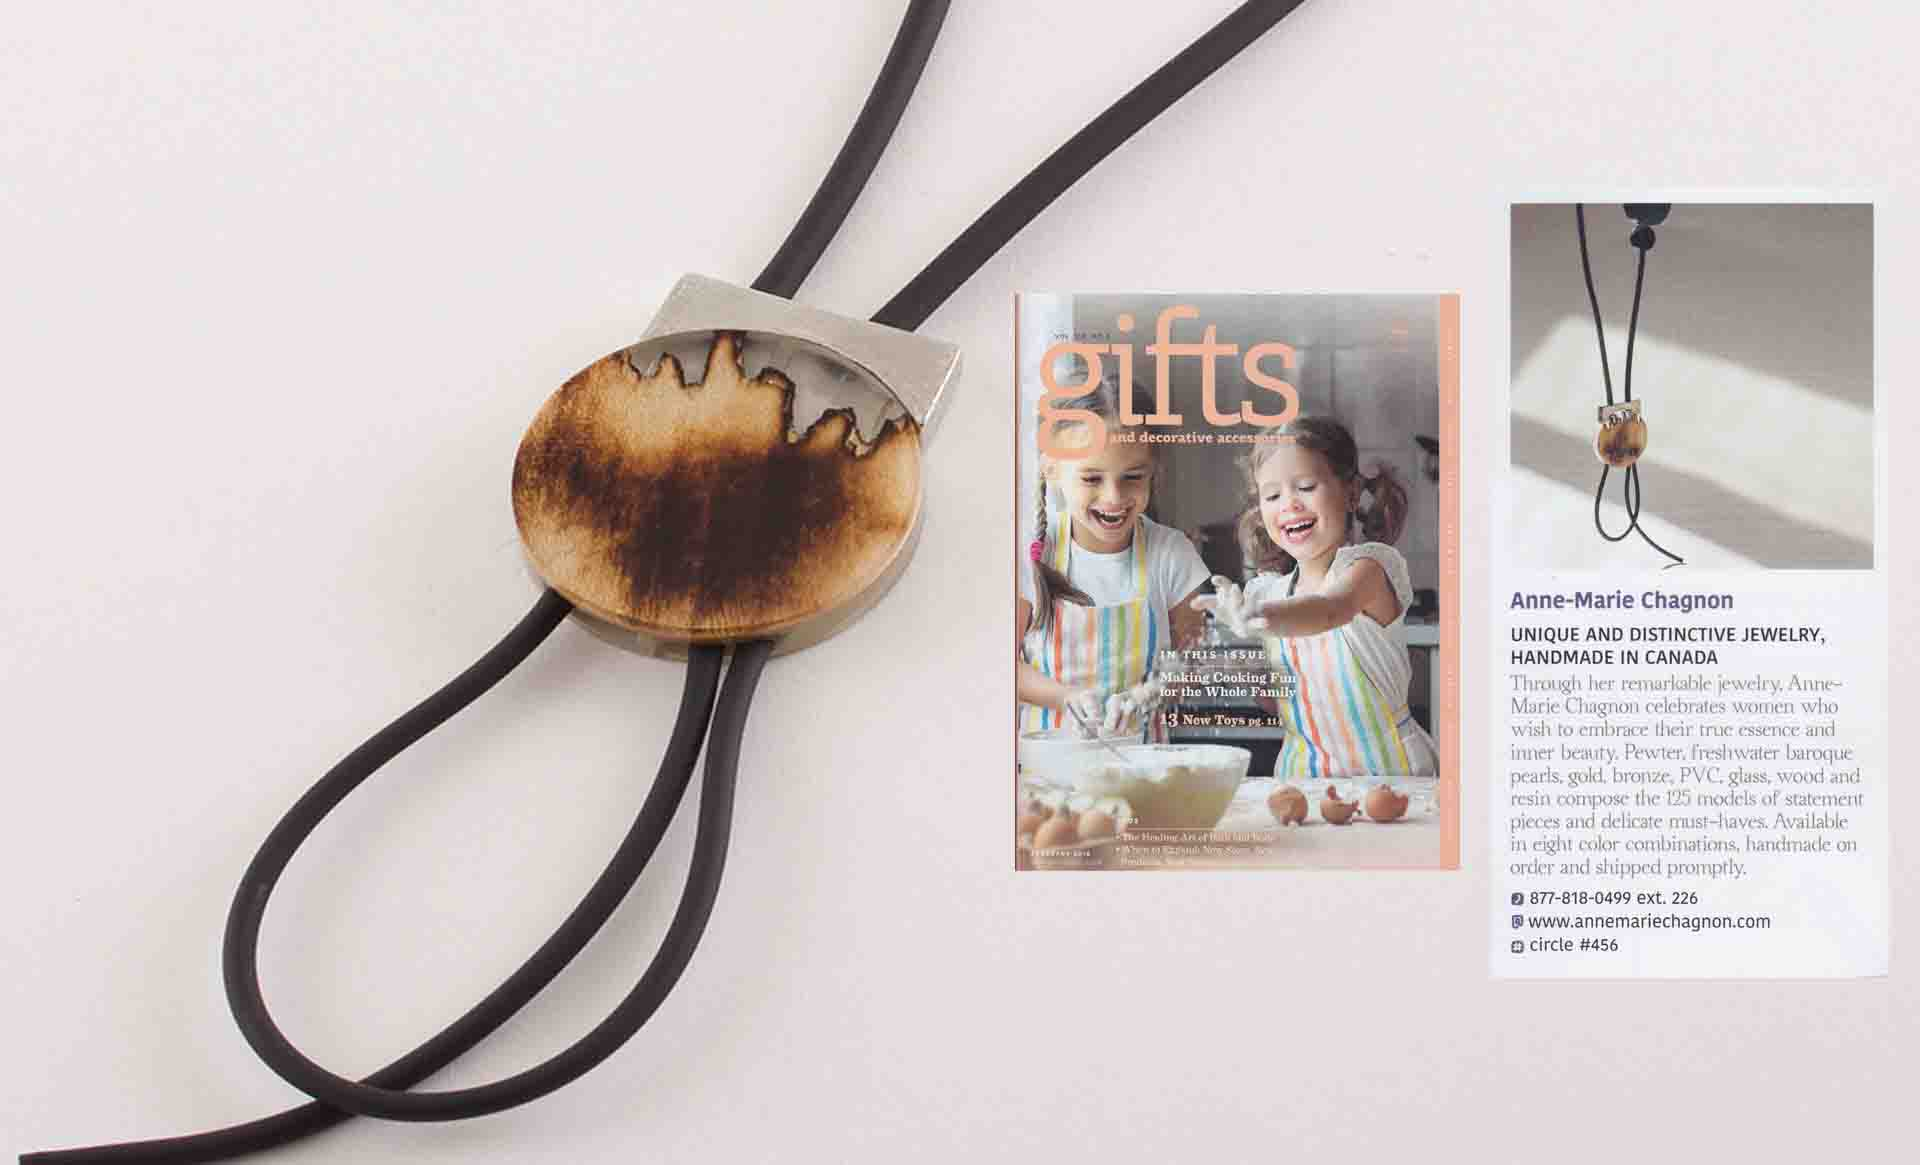 The POINT OF ORIGIN collection featured in the magazine Gifts and decorative accessories